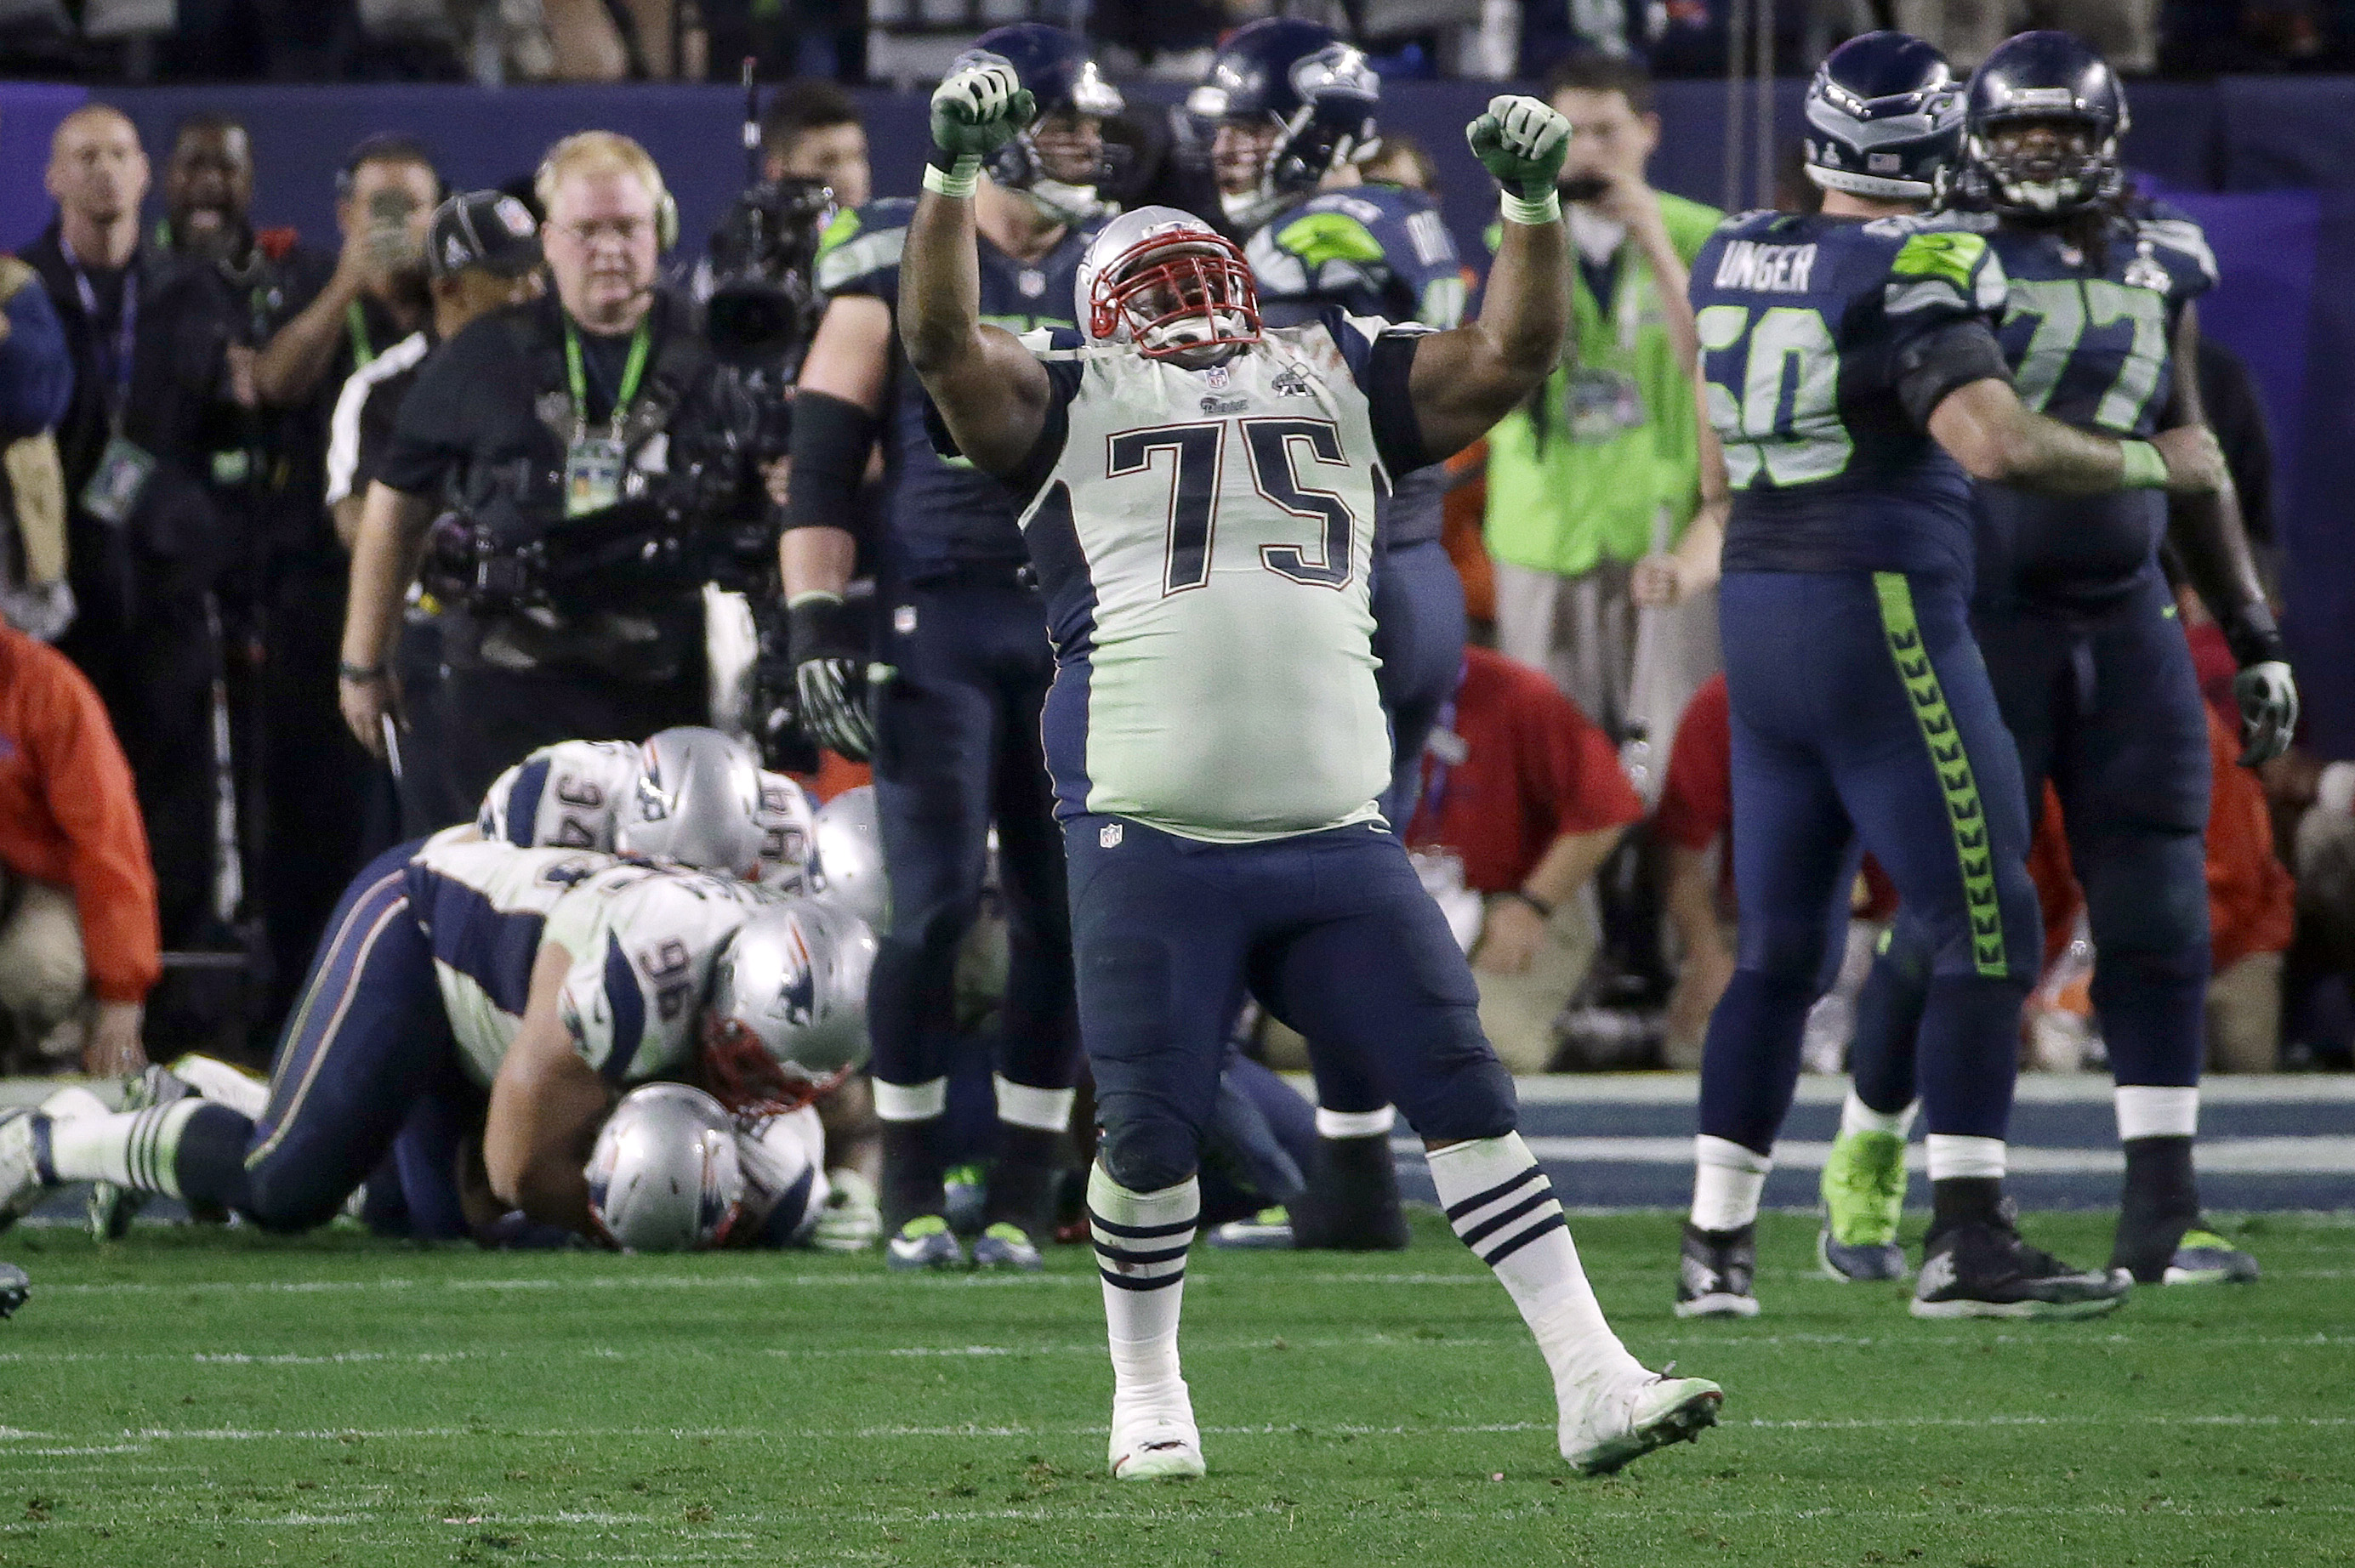 Vince Wilfork Says Patriots Wont Pick Up His Option - The